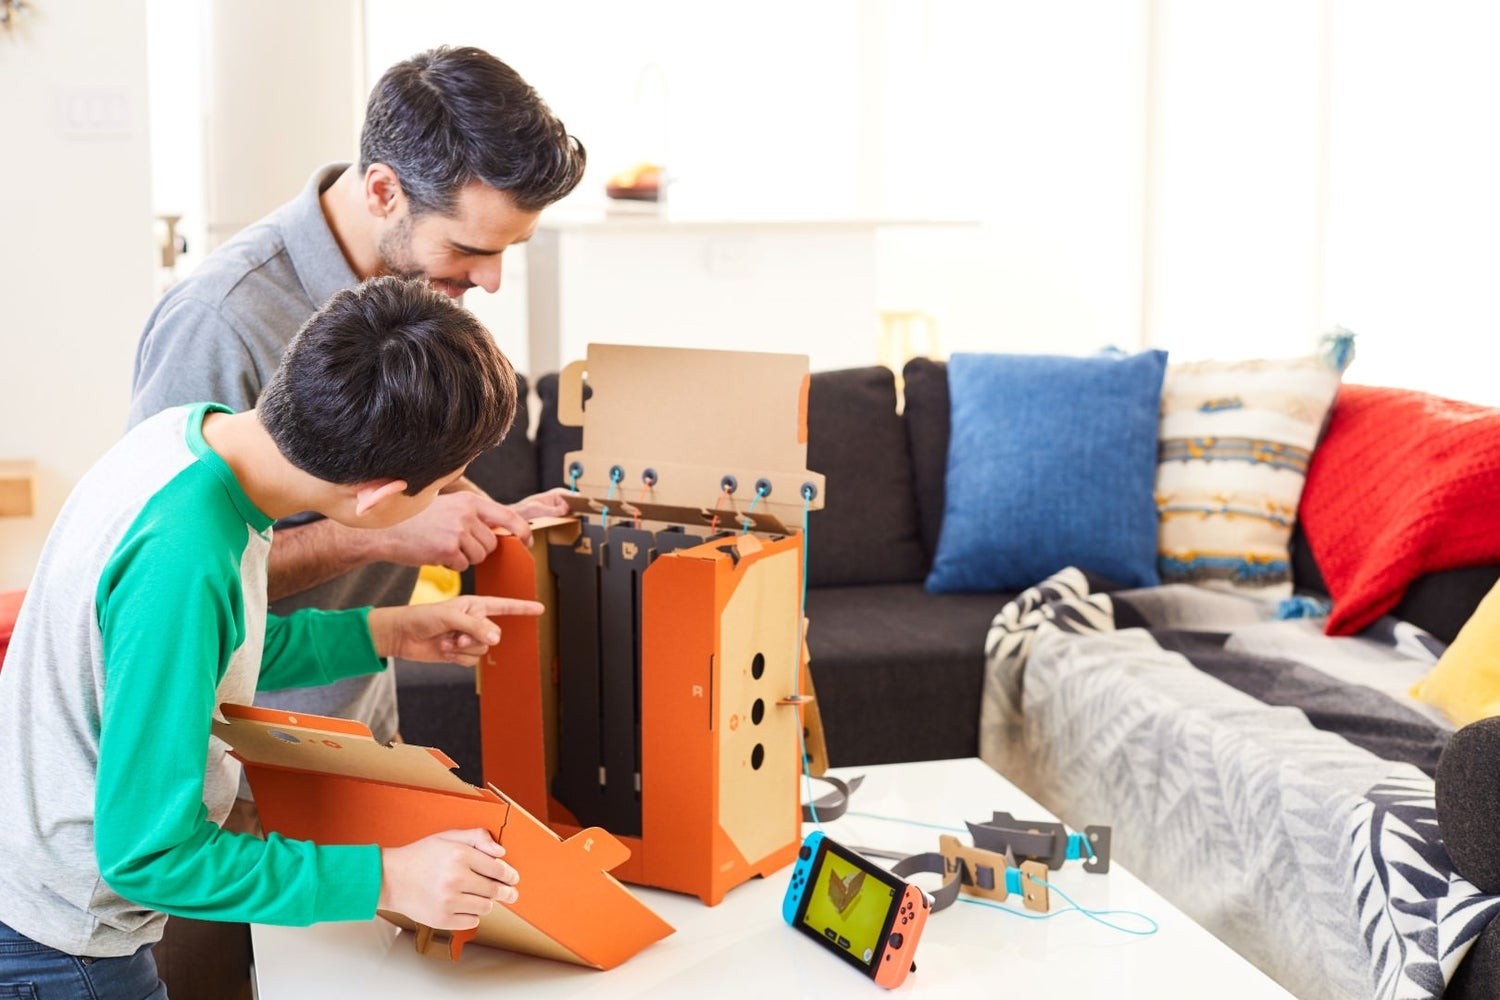 The coolest Nintendo Labo creations we could find